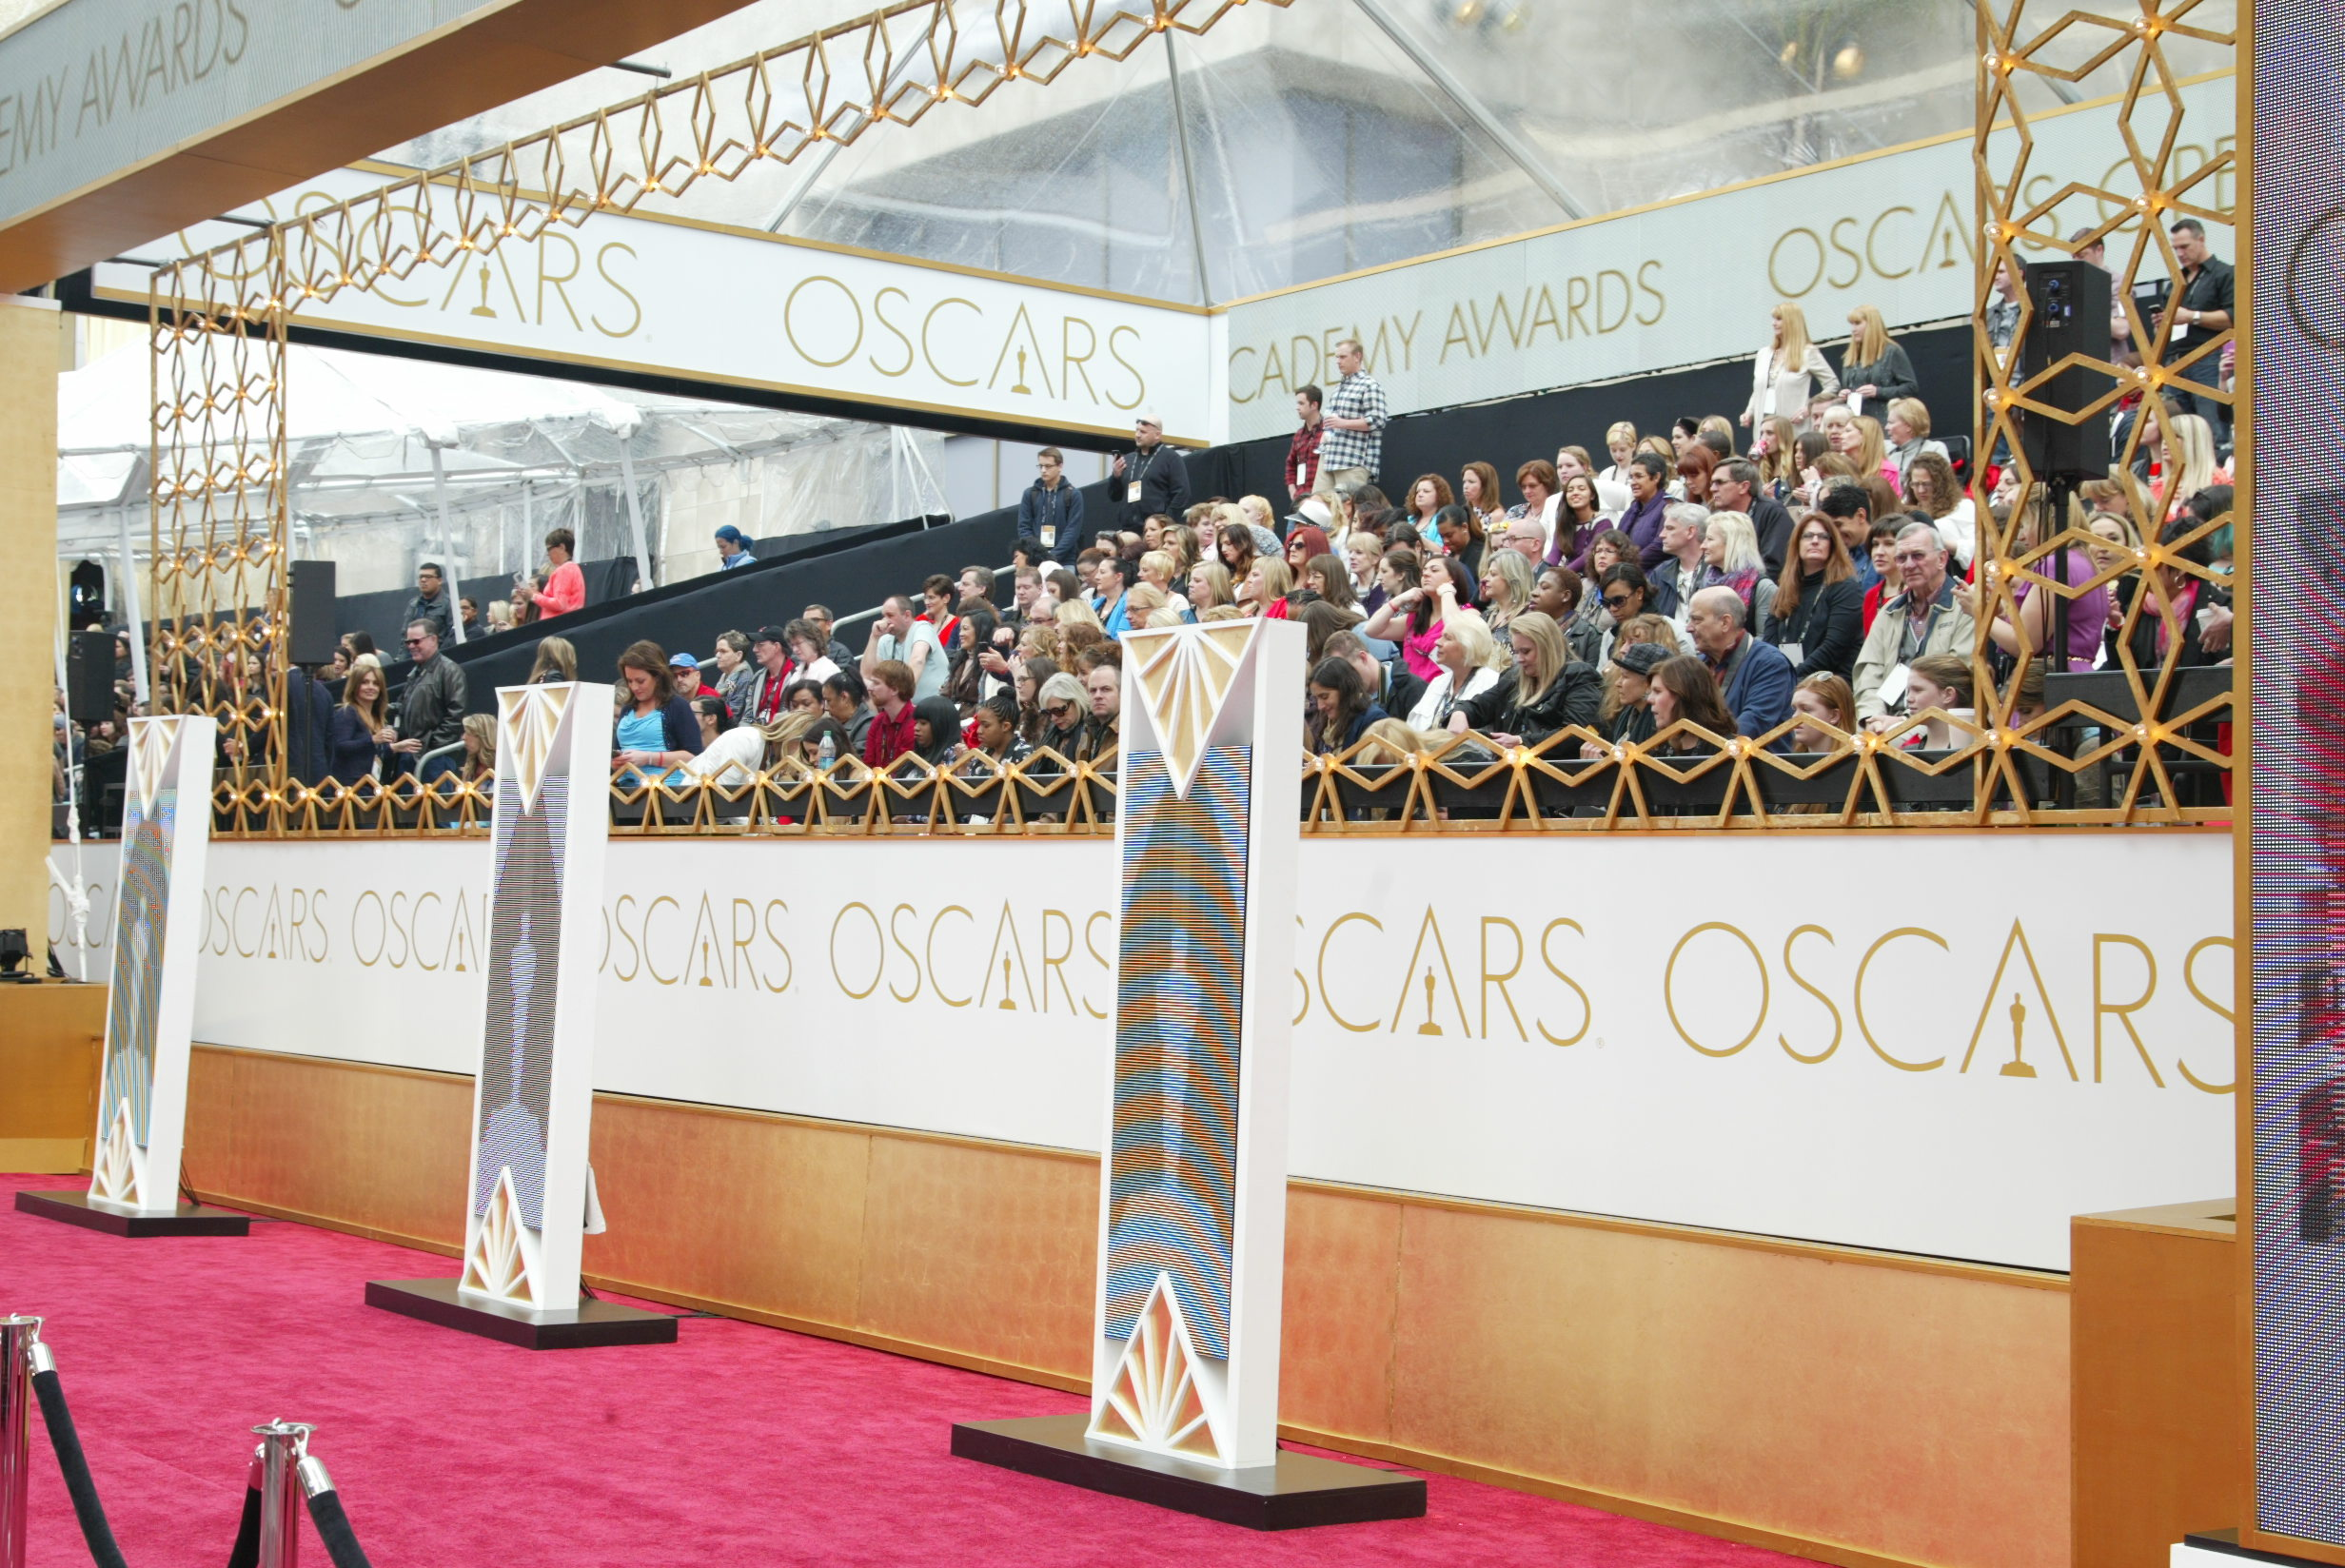 ... The Gold Knight - Latest Academy Awards news, predictions and insight